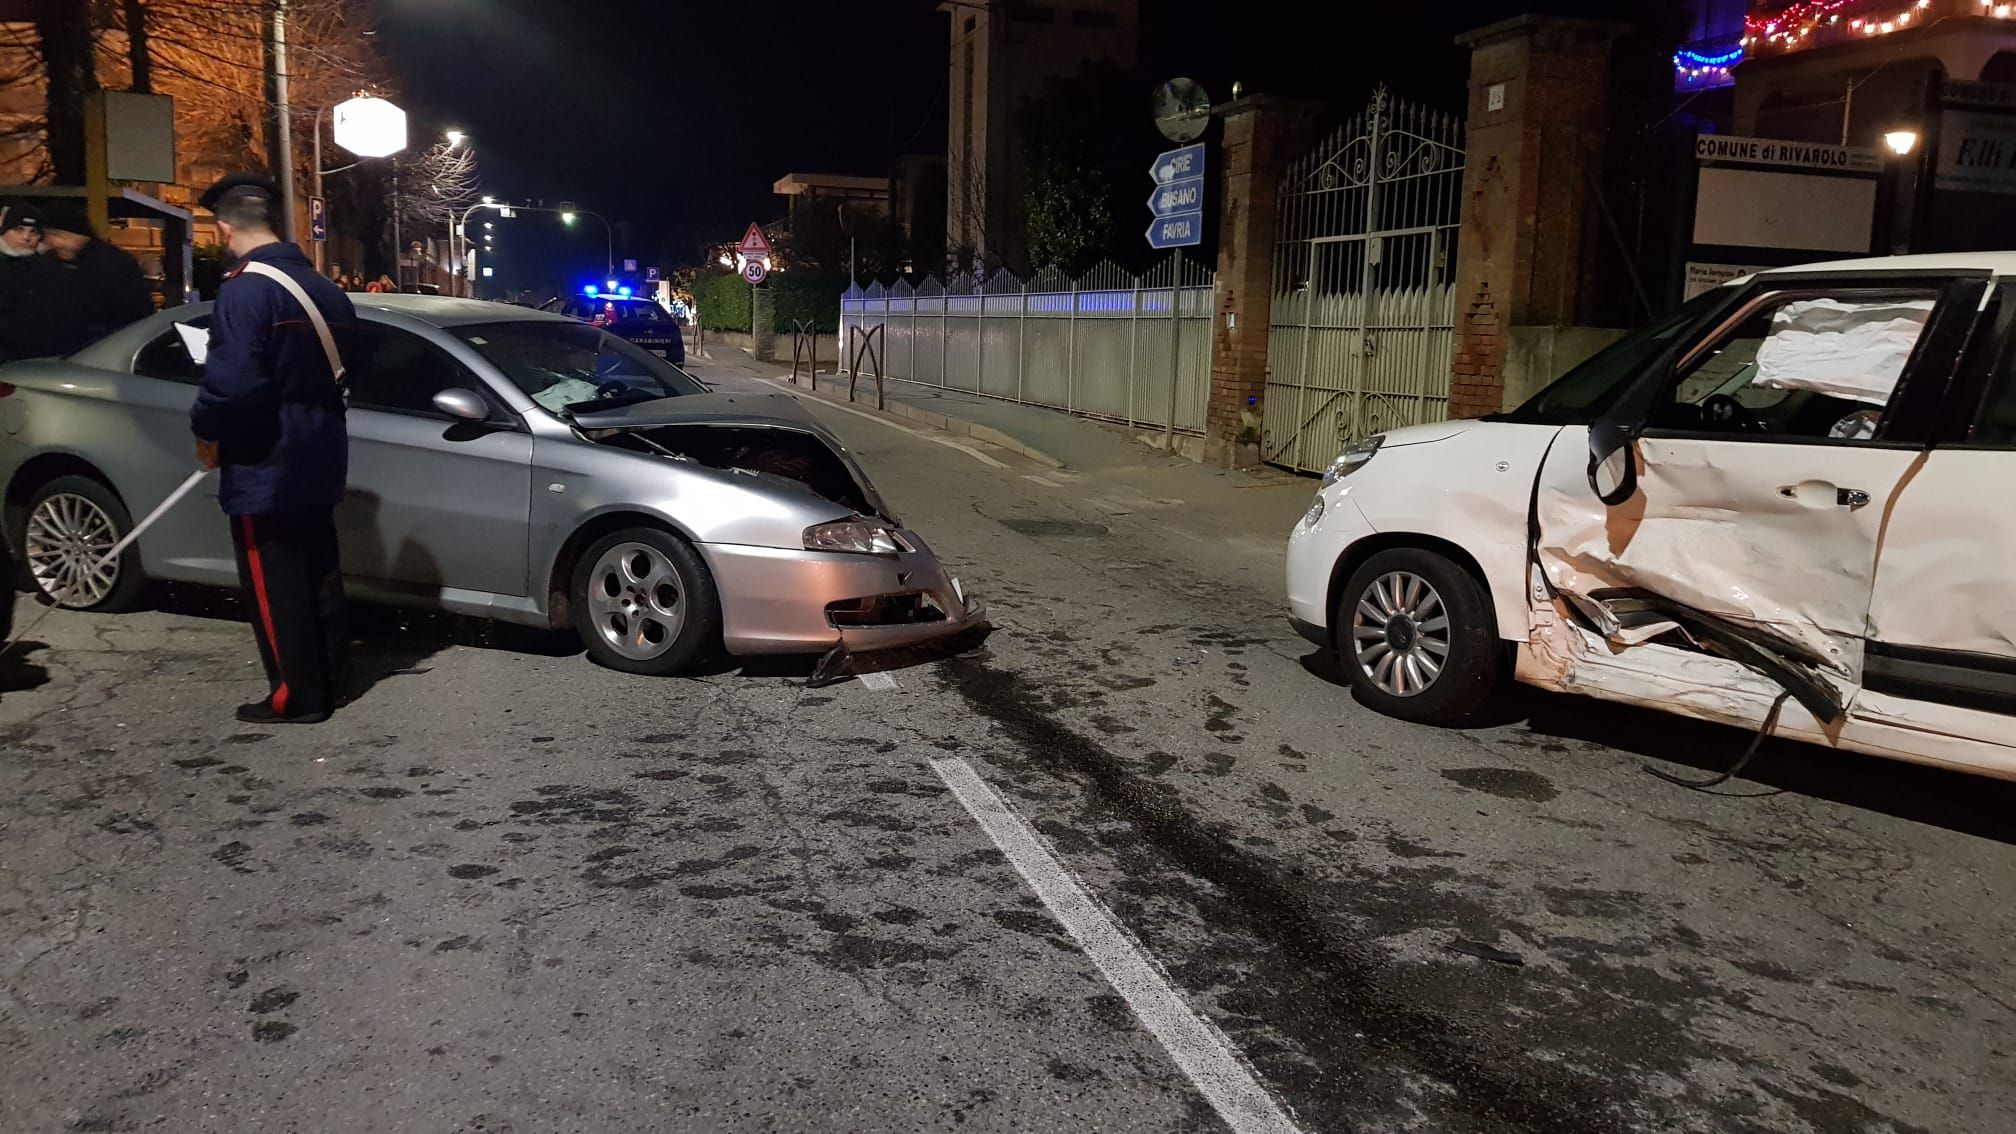 RIVAROLO - Incidente stradale in via Favria, due feriti - FOTO